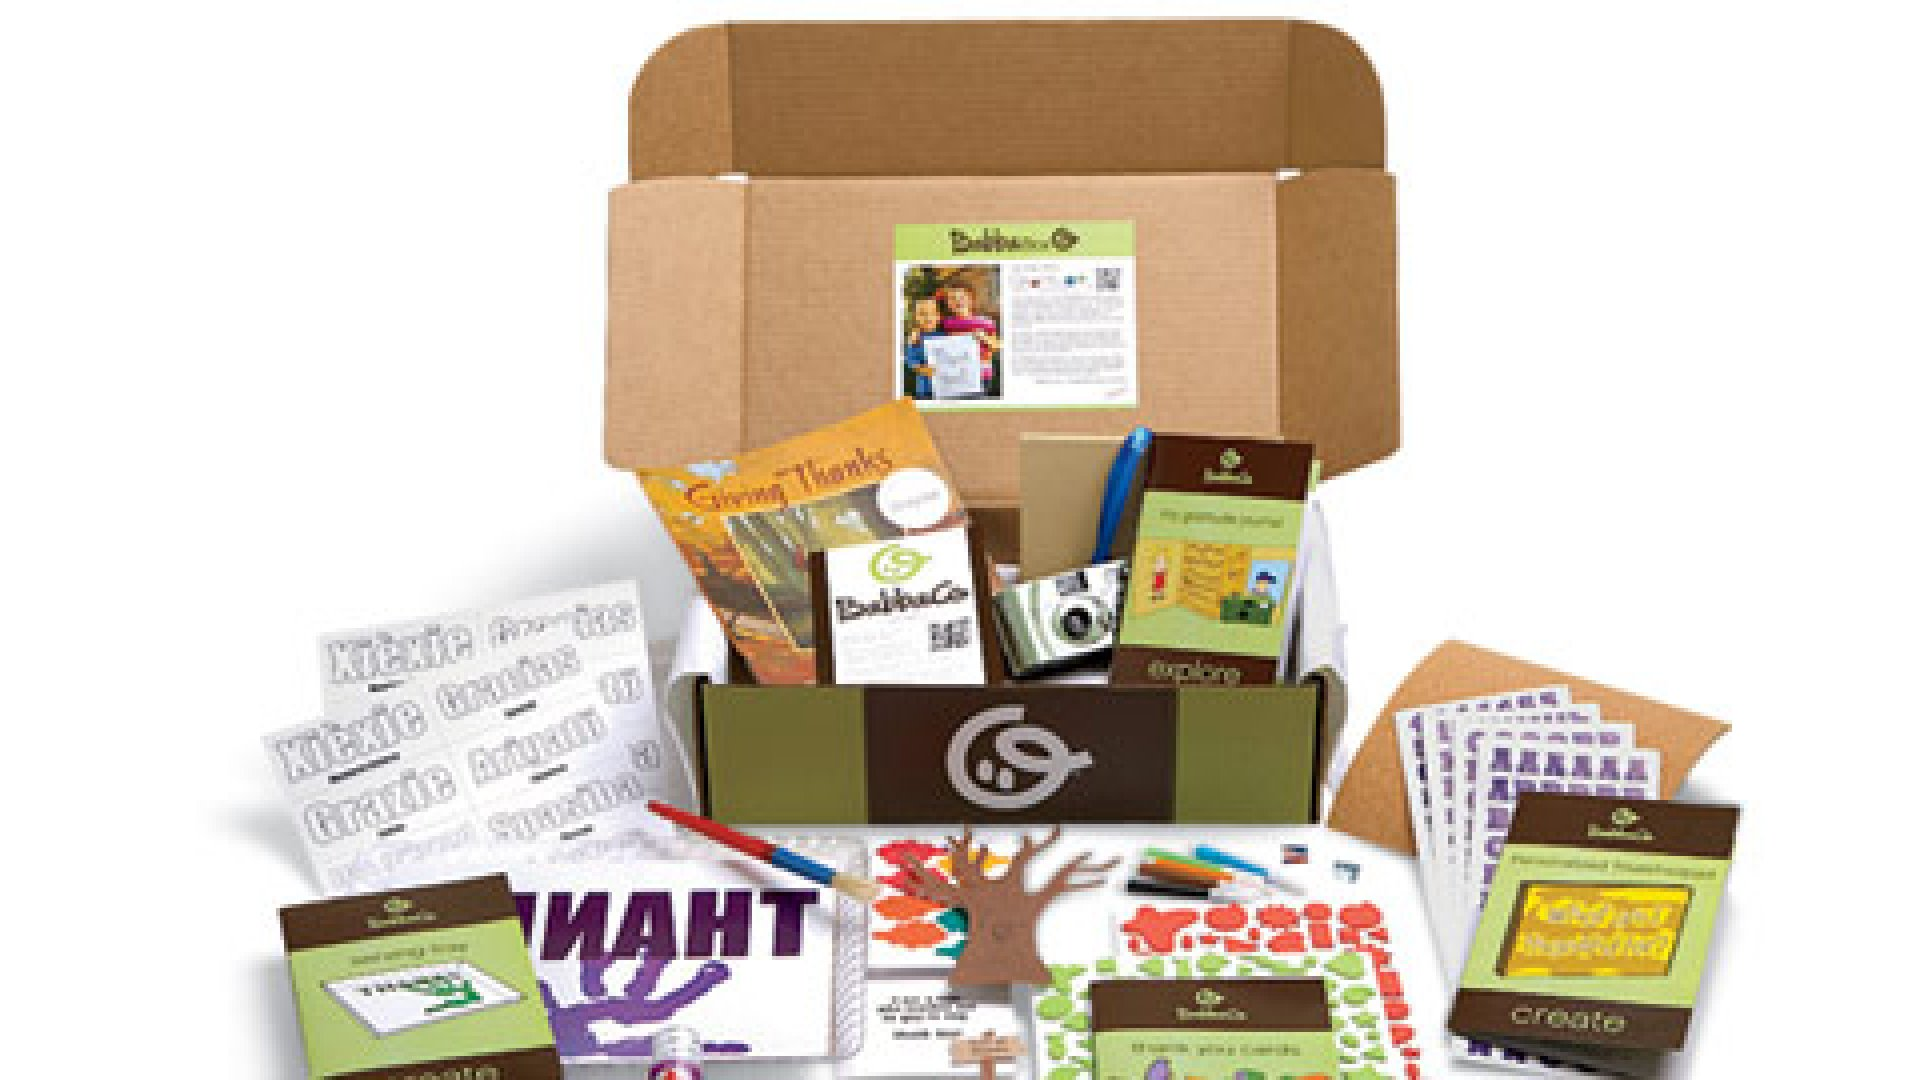 <b>Playtime in a box</b> BabbaBox delivers a box full of kid-friendly activities each month.